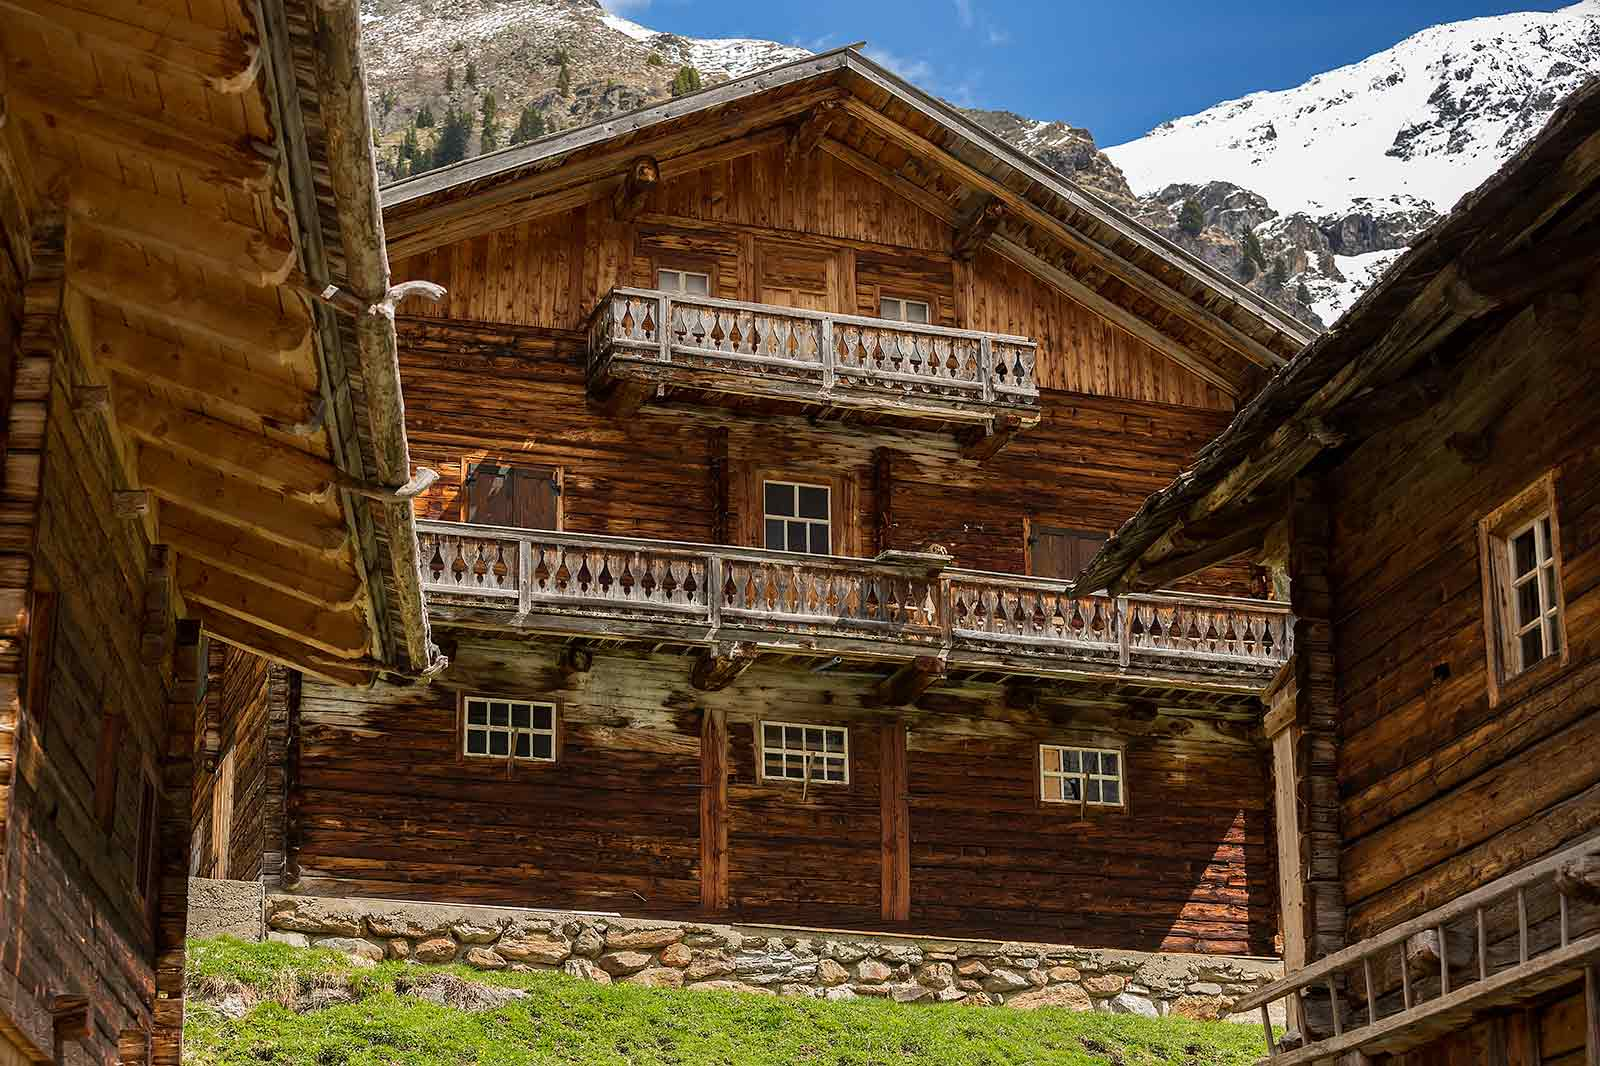 The alpine village Oberstalleralm consists of only 18 rustic alpine huts.